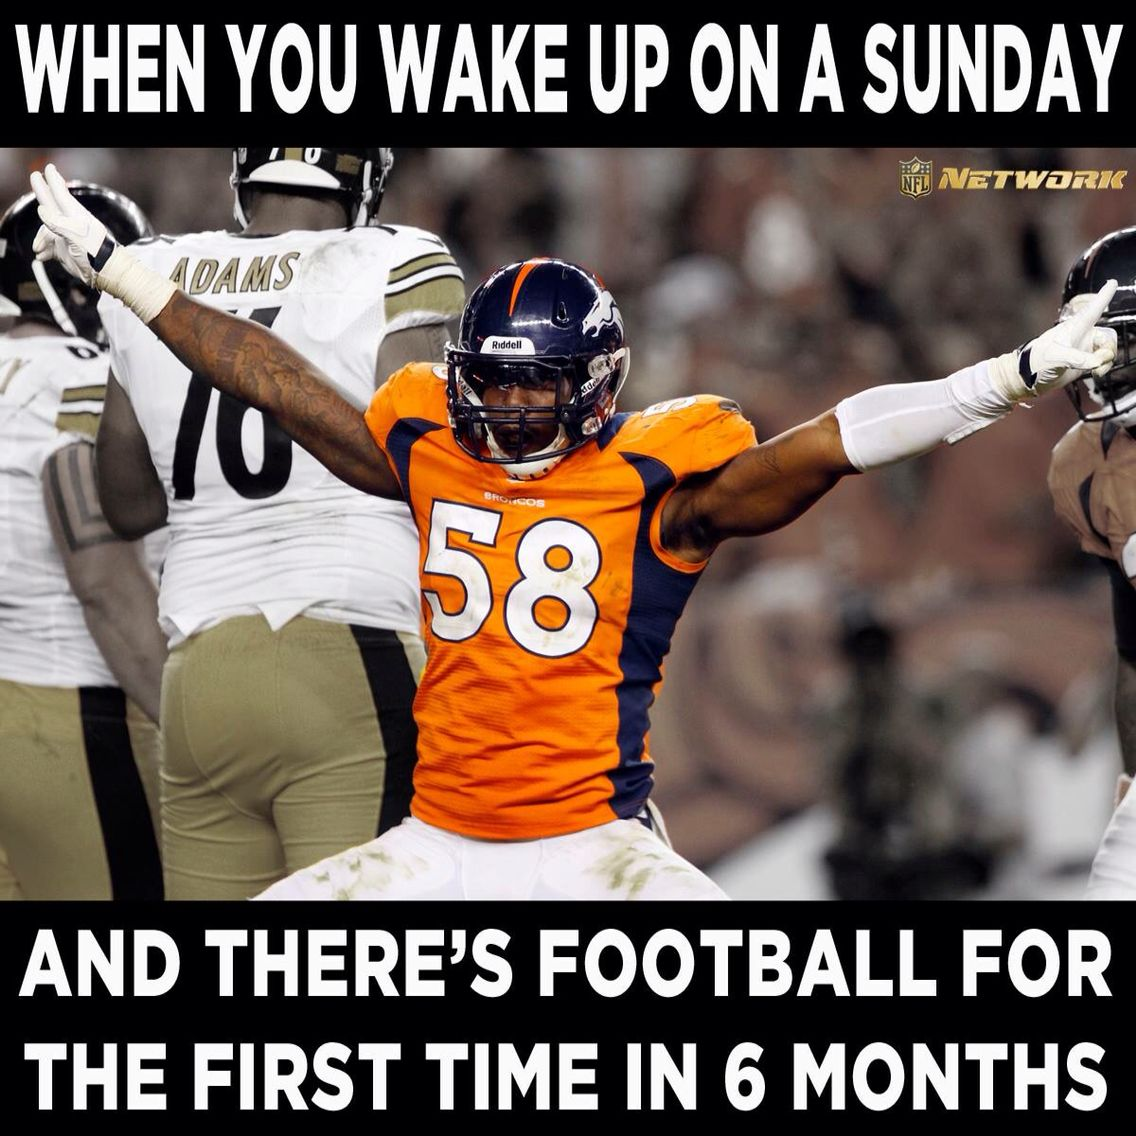 Get Your Game On Football Jokes American Football Memes Funny Football Memes